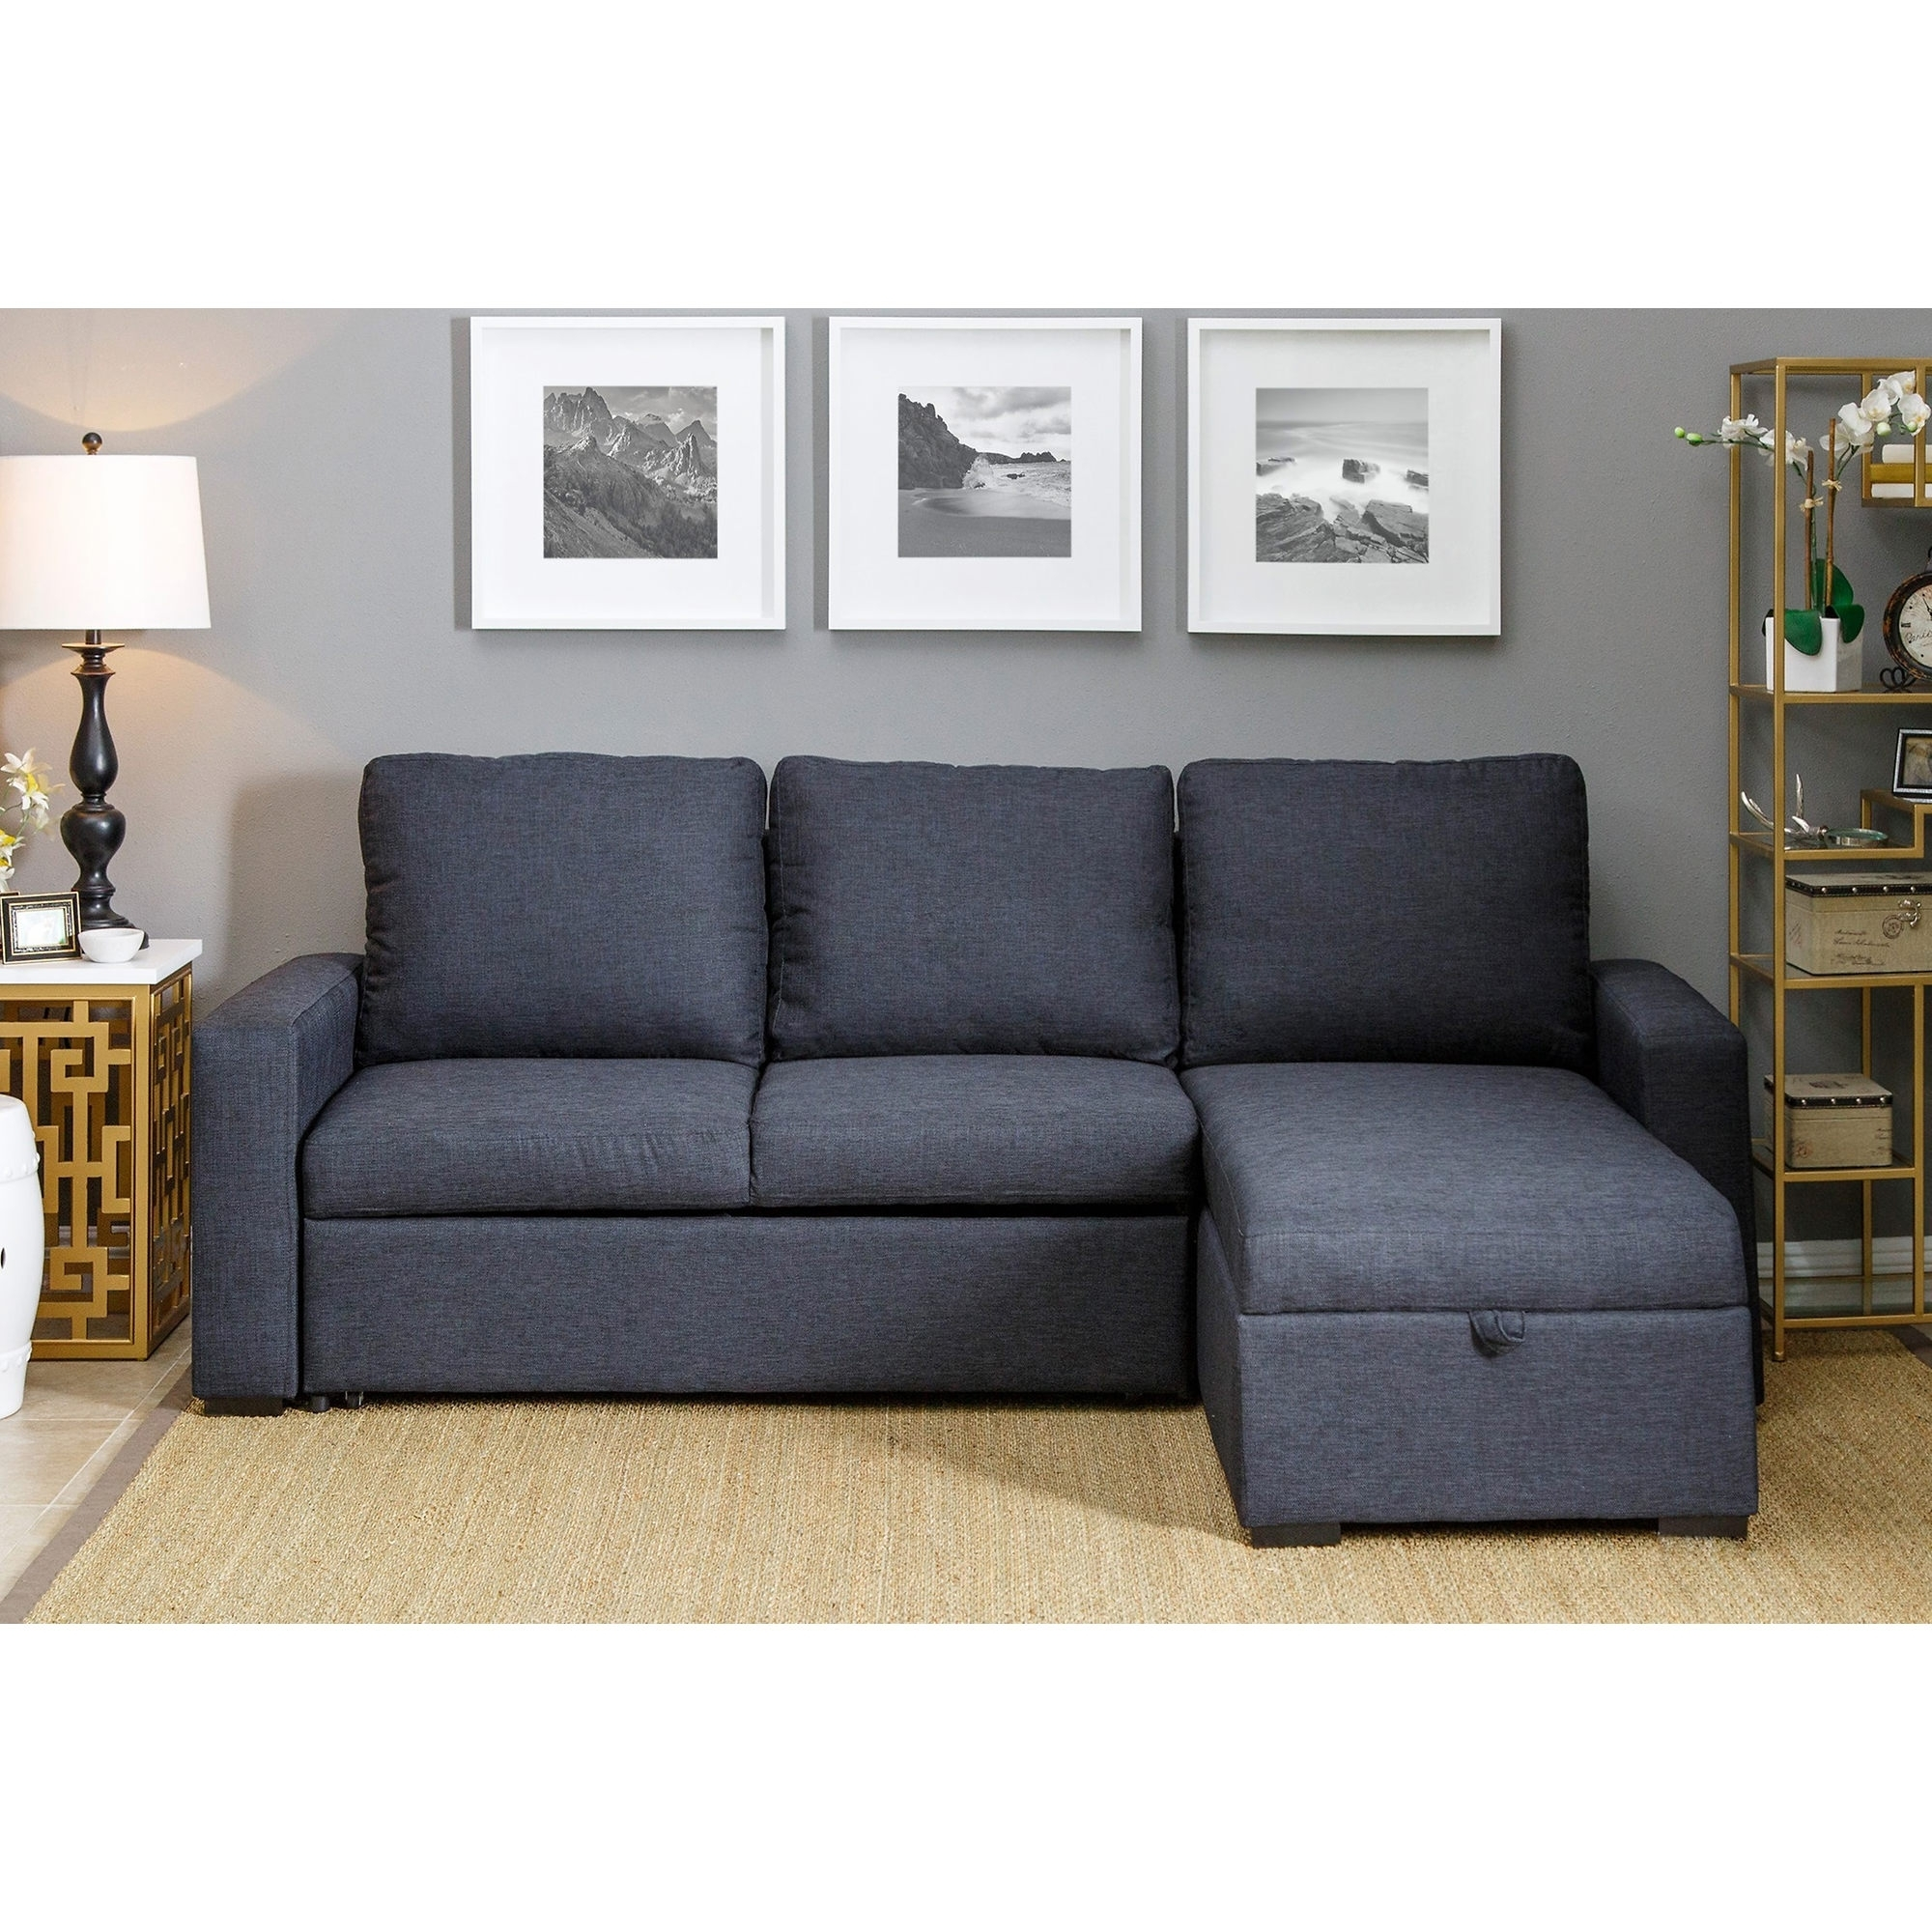 Best High Back Sectional Sofa 53 In Sectional Sofas North Carolina Regarding North Carolina Sectional Sofas (View 9 of 10)